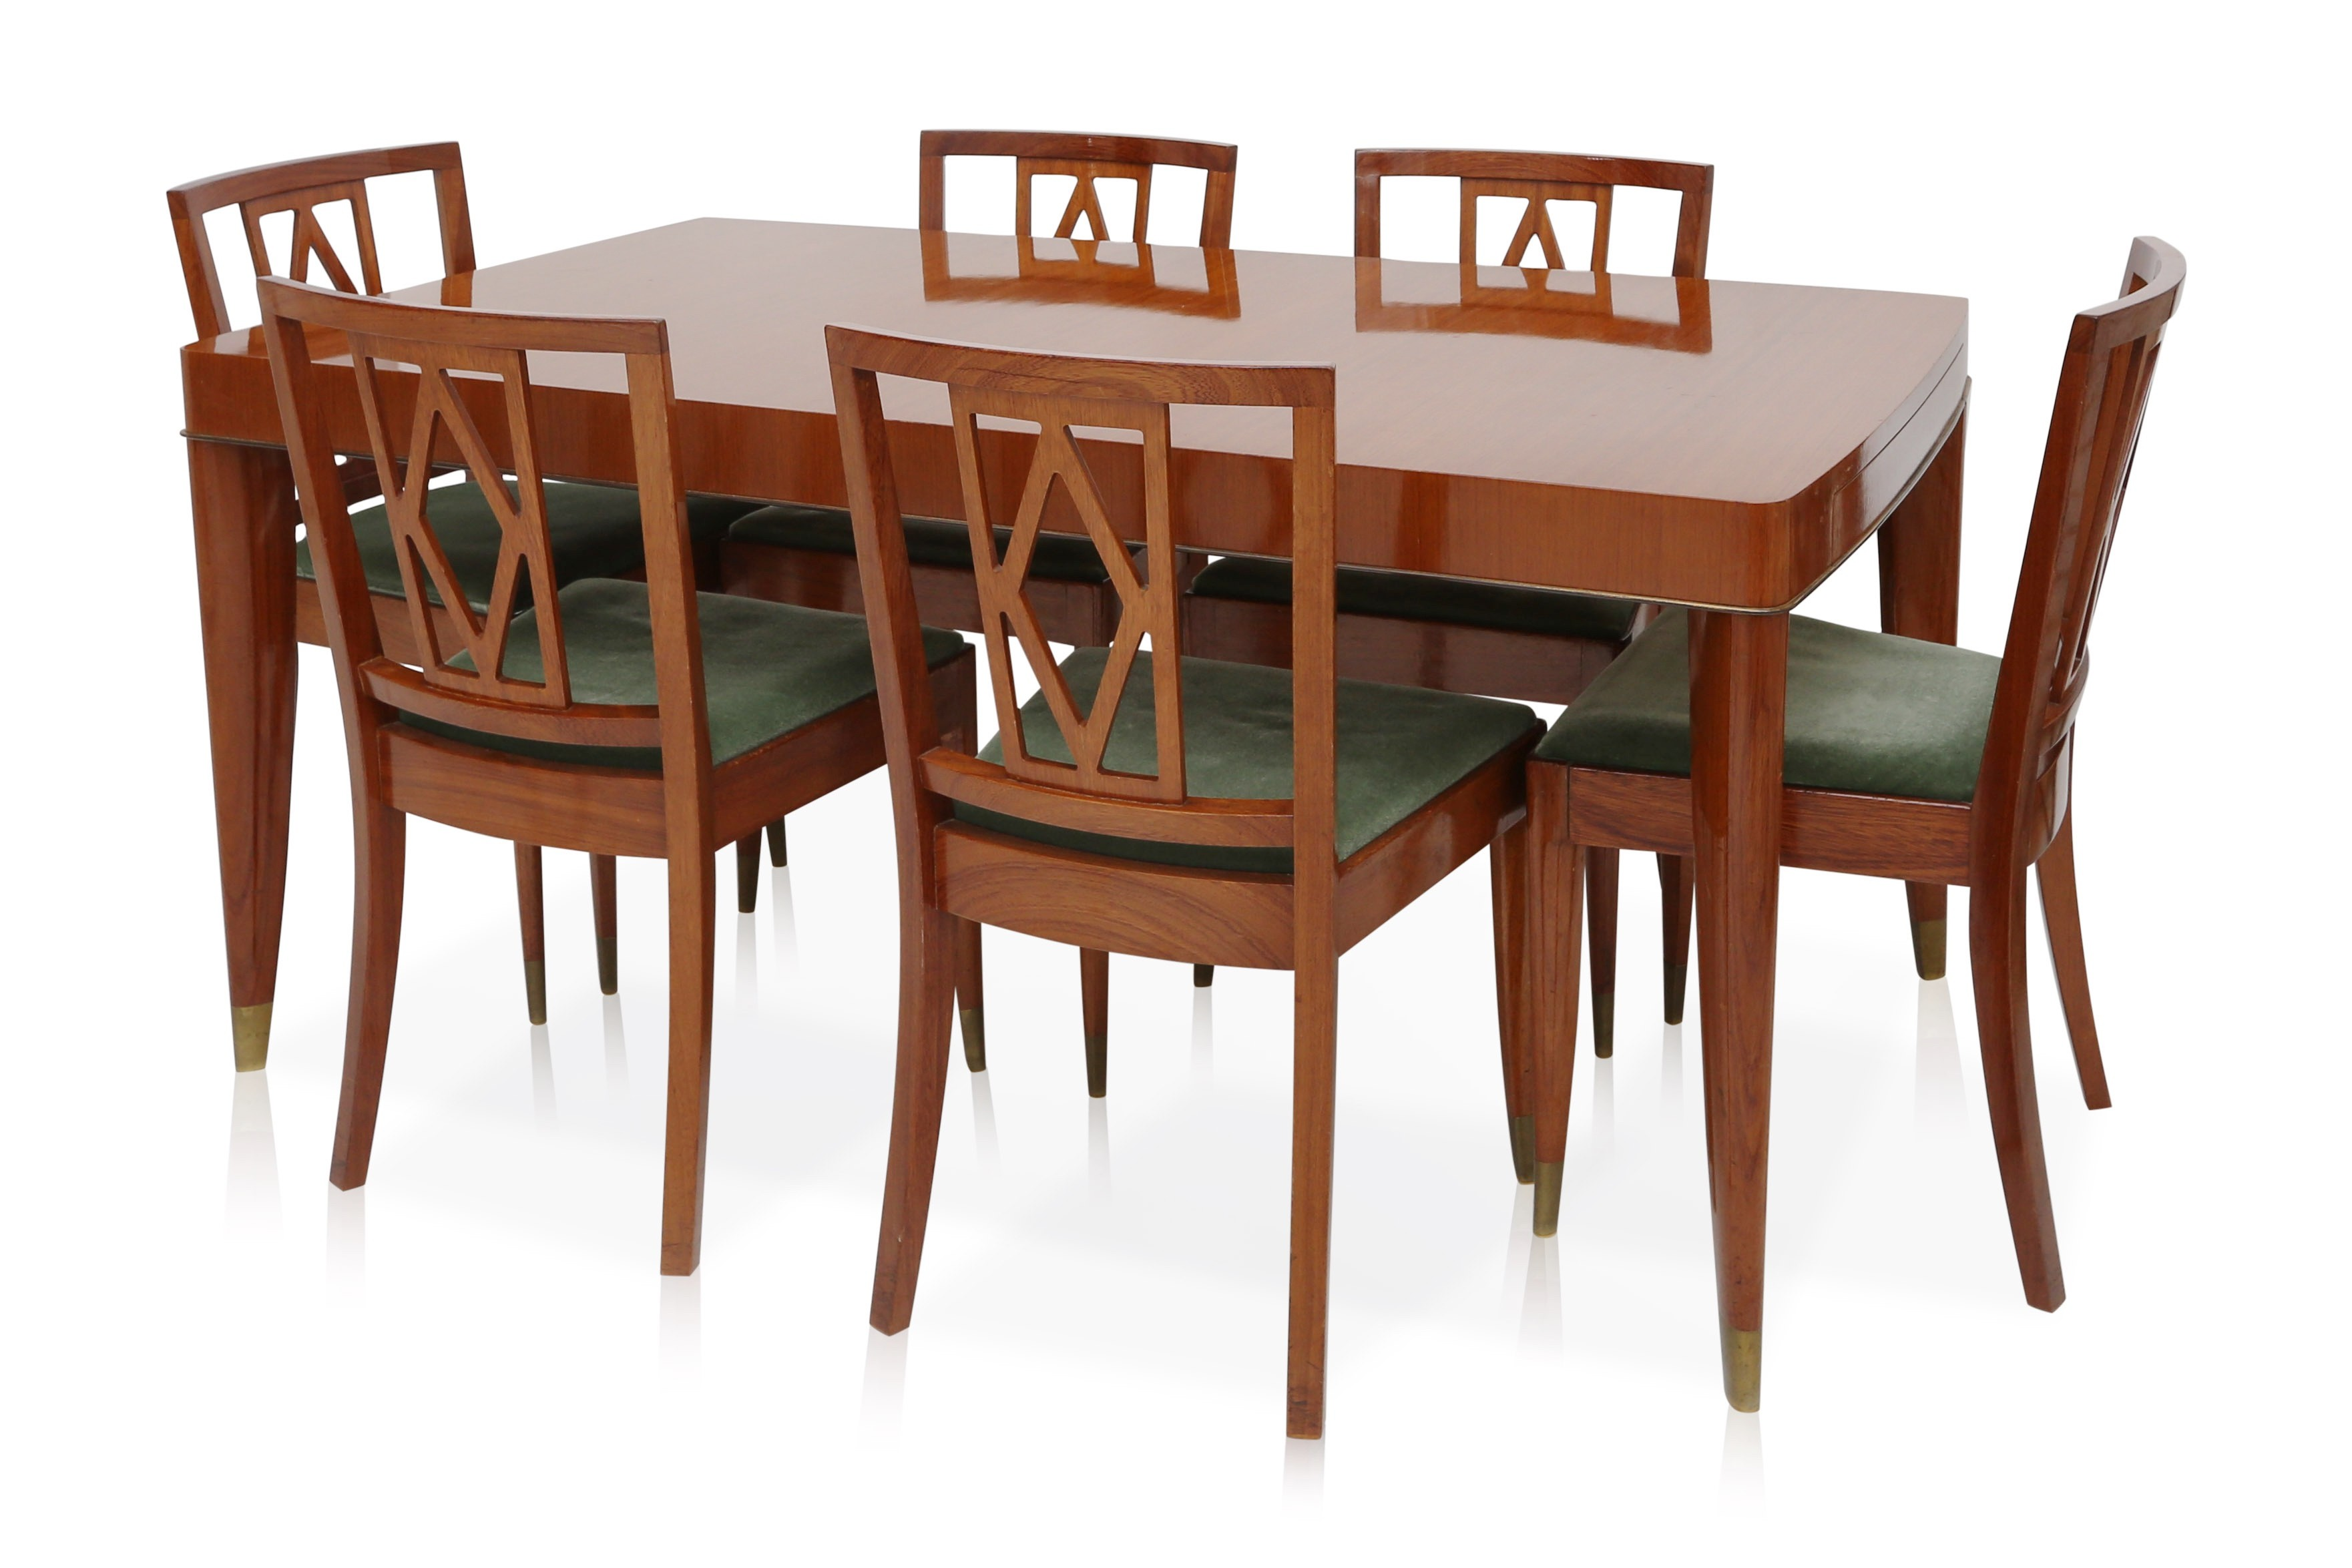 set of 6 belgian dining chairs in mahogany and green velvet de coene brothers 1950s